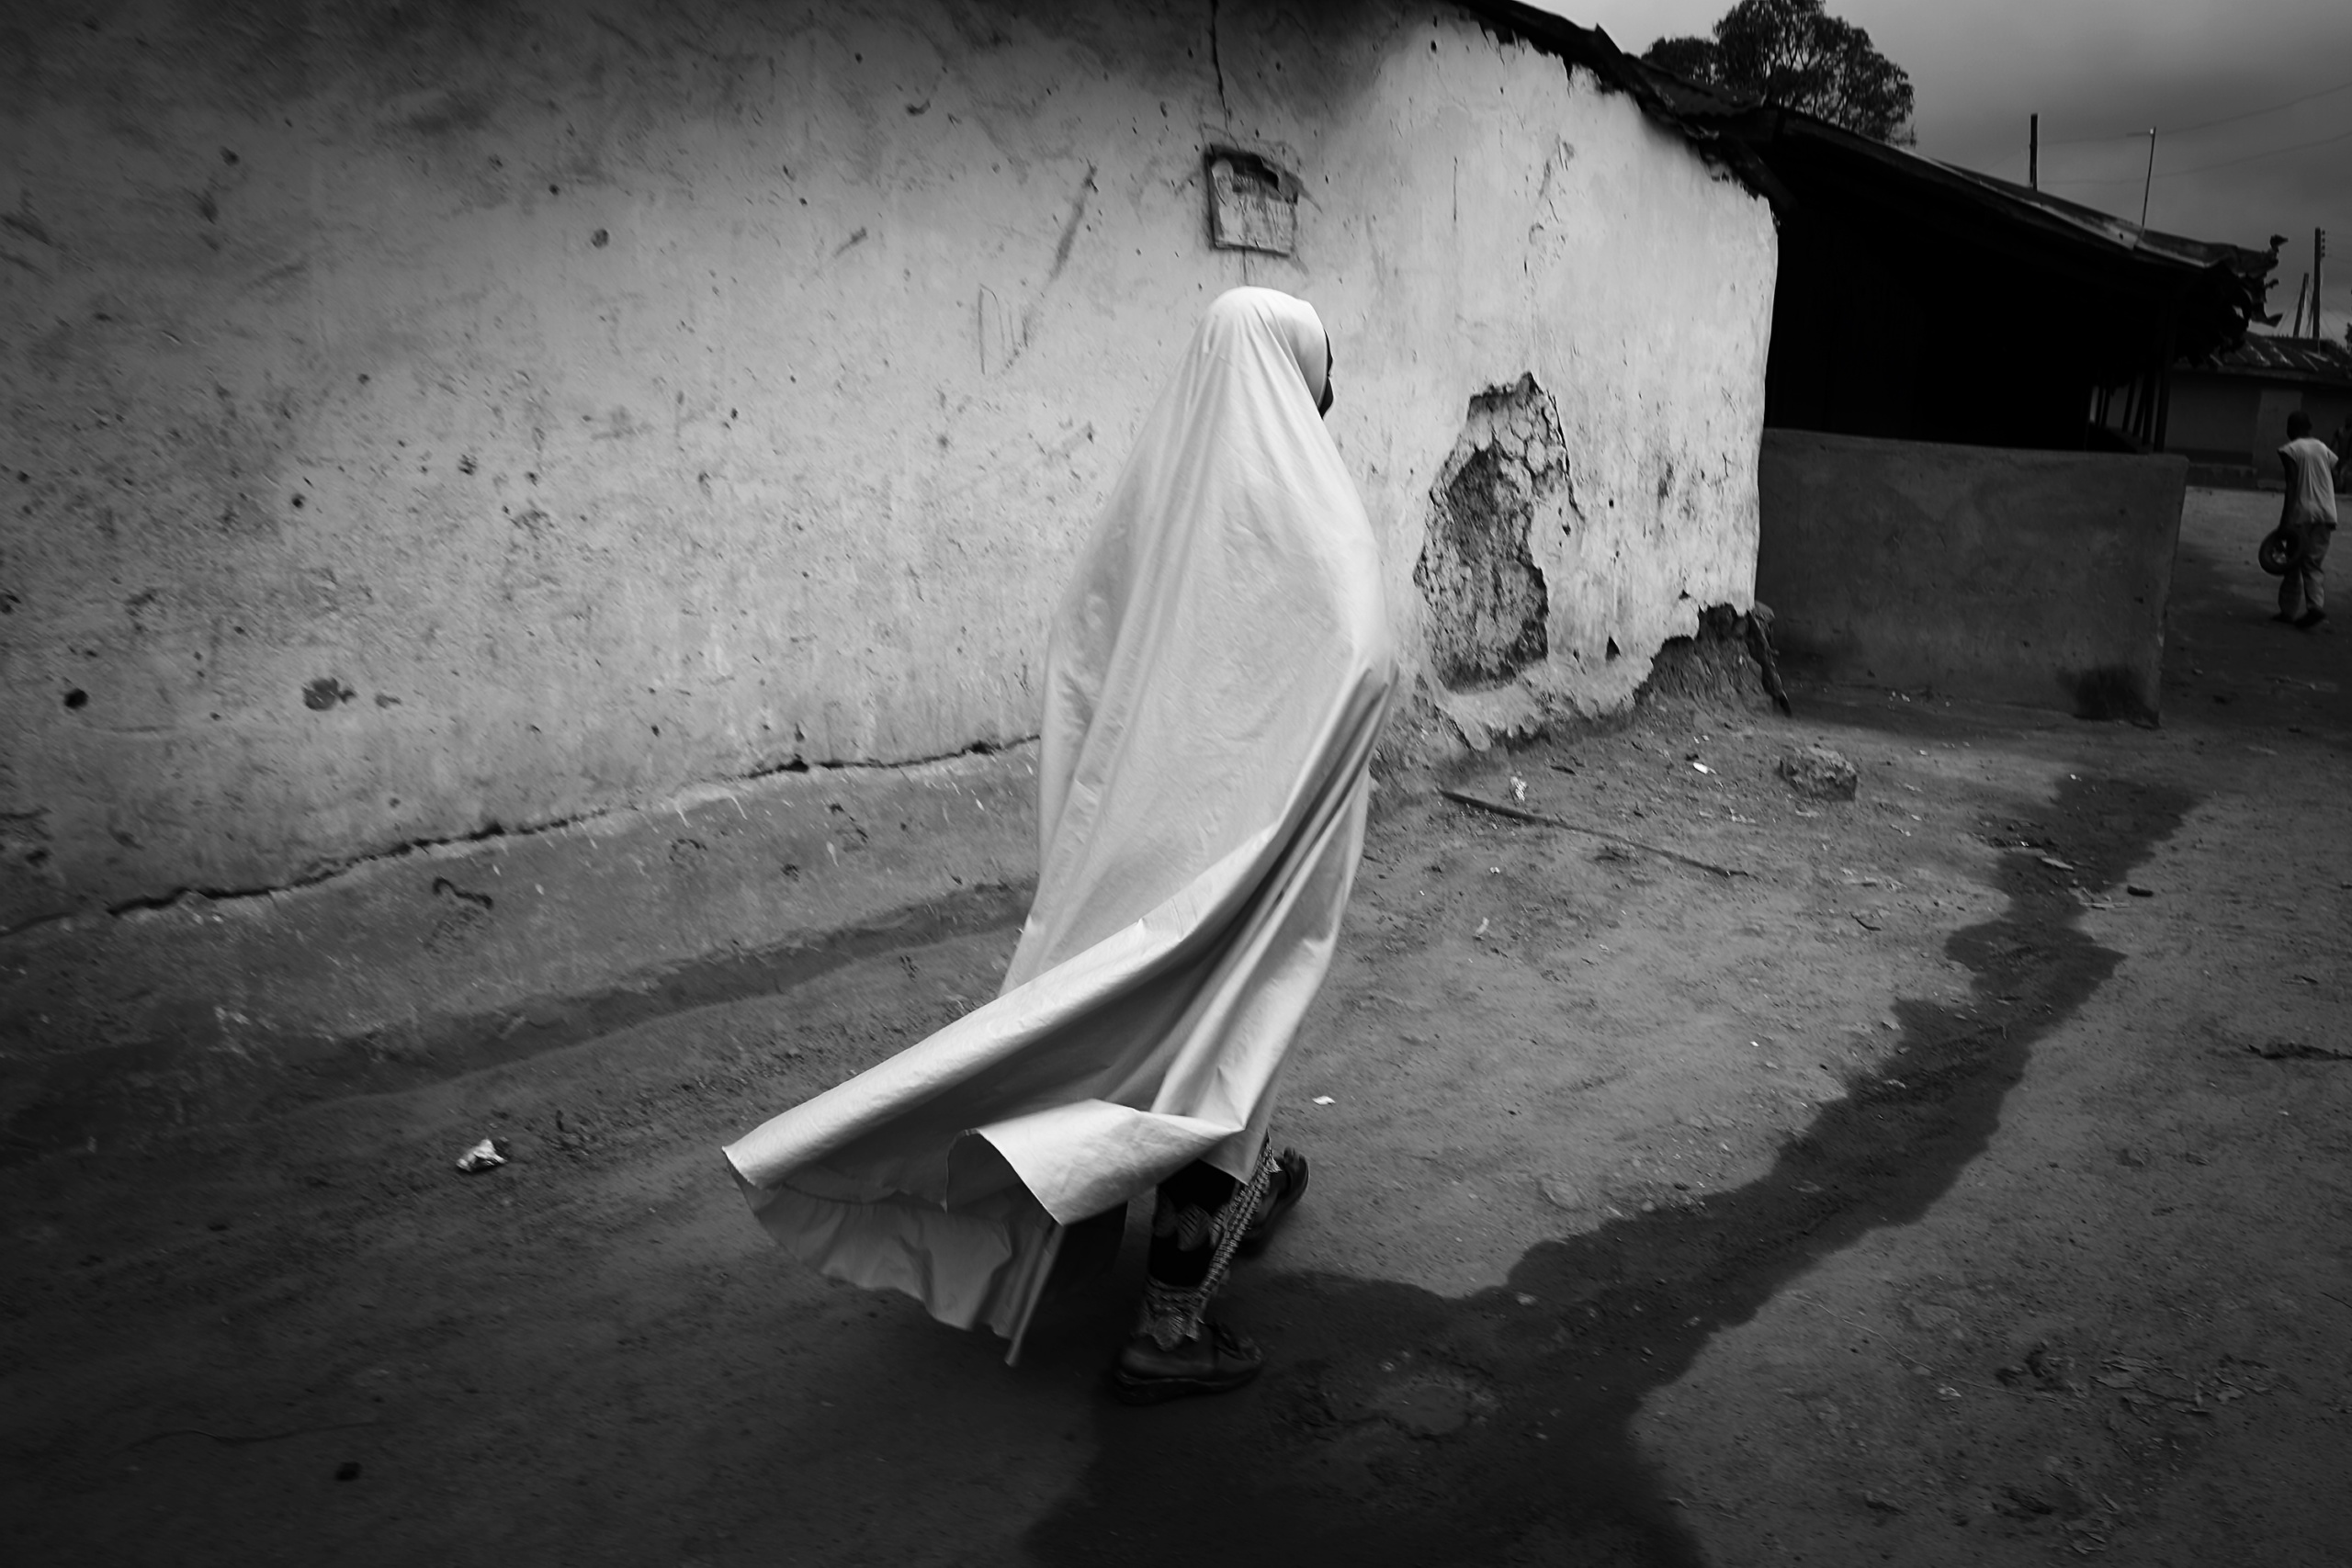 NIGERIA,Kaduna. A woman walks in a street of a Muslim district of kaduna. In the city of Kaduna every community lives in its district. It is rare to find places or Muslim and Christian live together. Nearly 4,000 people have died in Nigeria due to the violent conflict over the past decade. The economic and ethnic conflict in the northern states has a religious dimension. It is only with true governance that these conflicting differences could be managed. As elsewhere in Nigeria, residents accuse both local and state government officials for promoting identity-based divisions to advance their own political agendas.